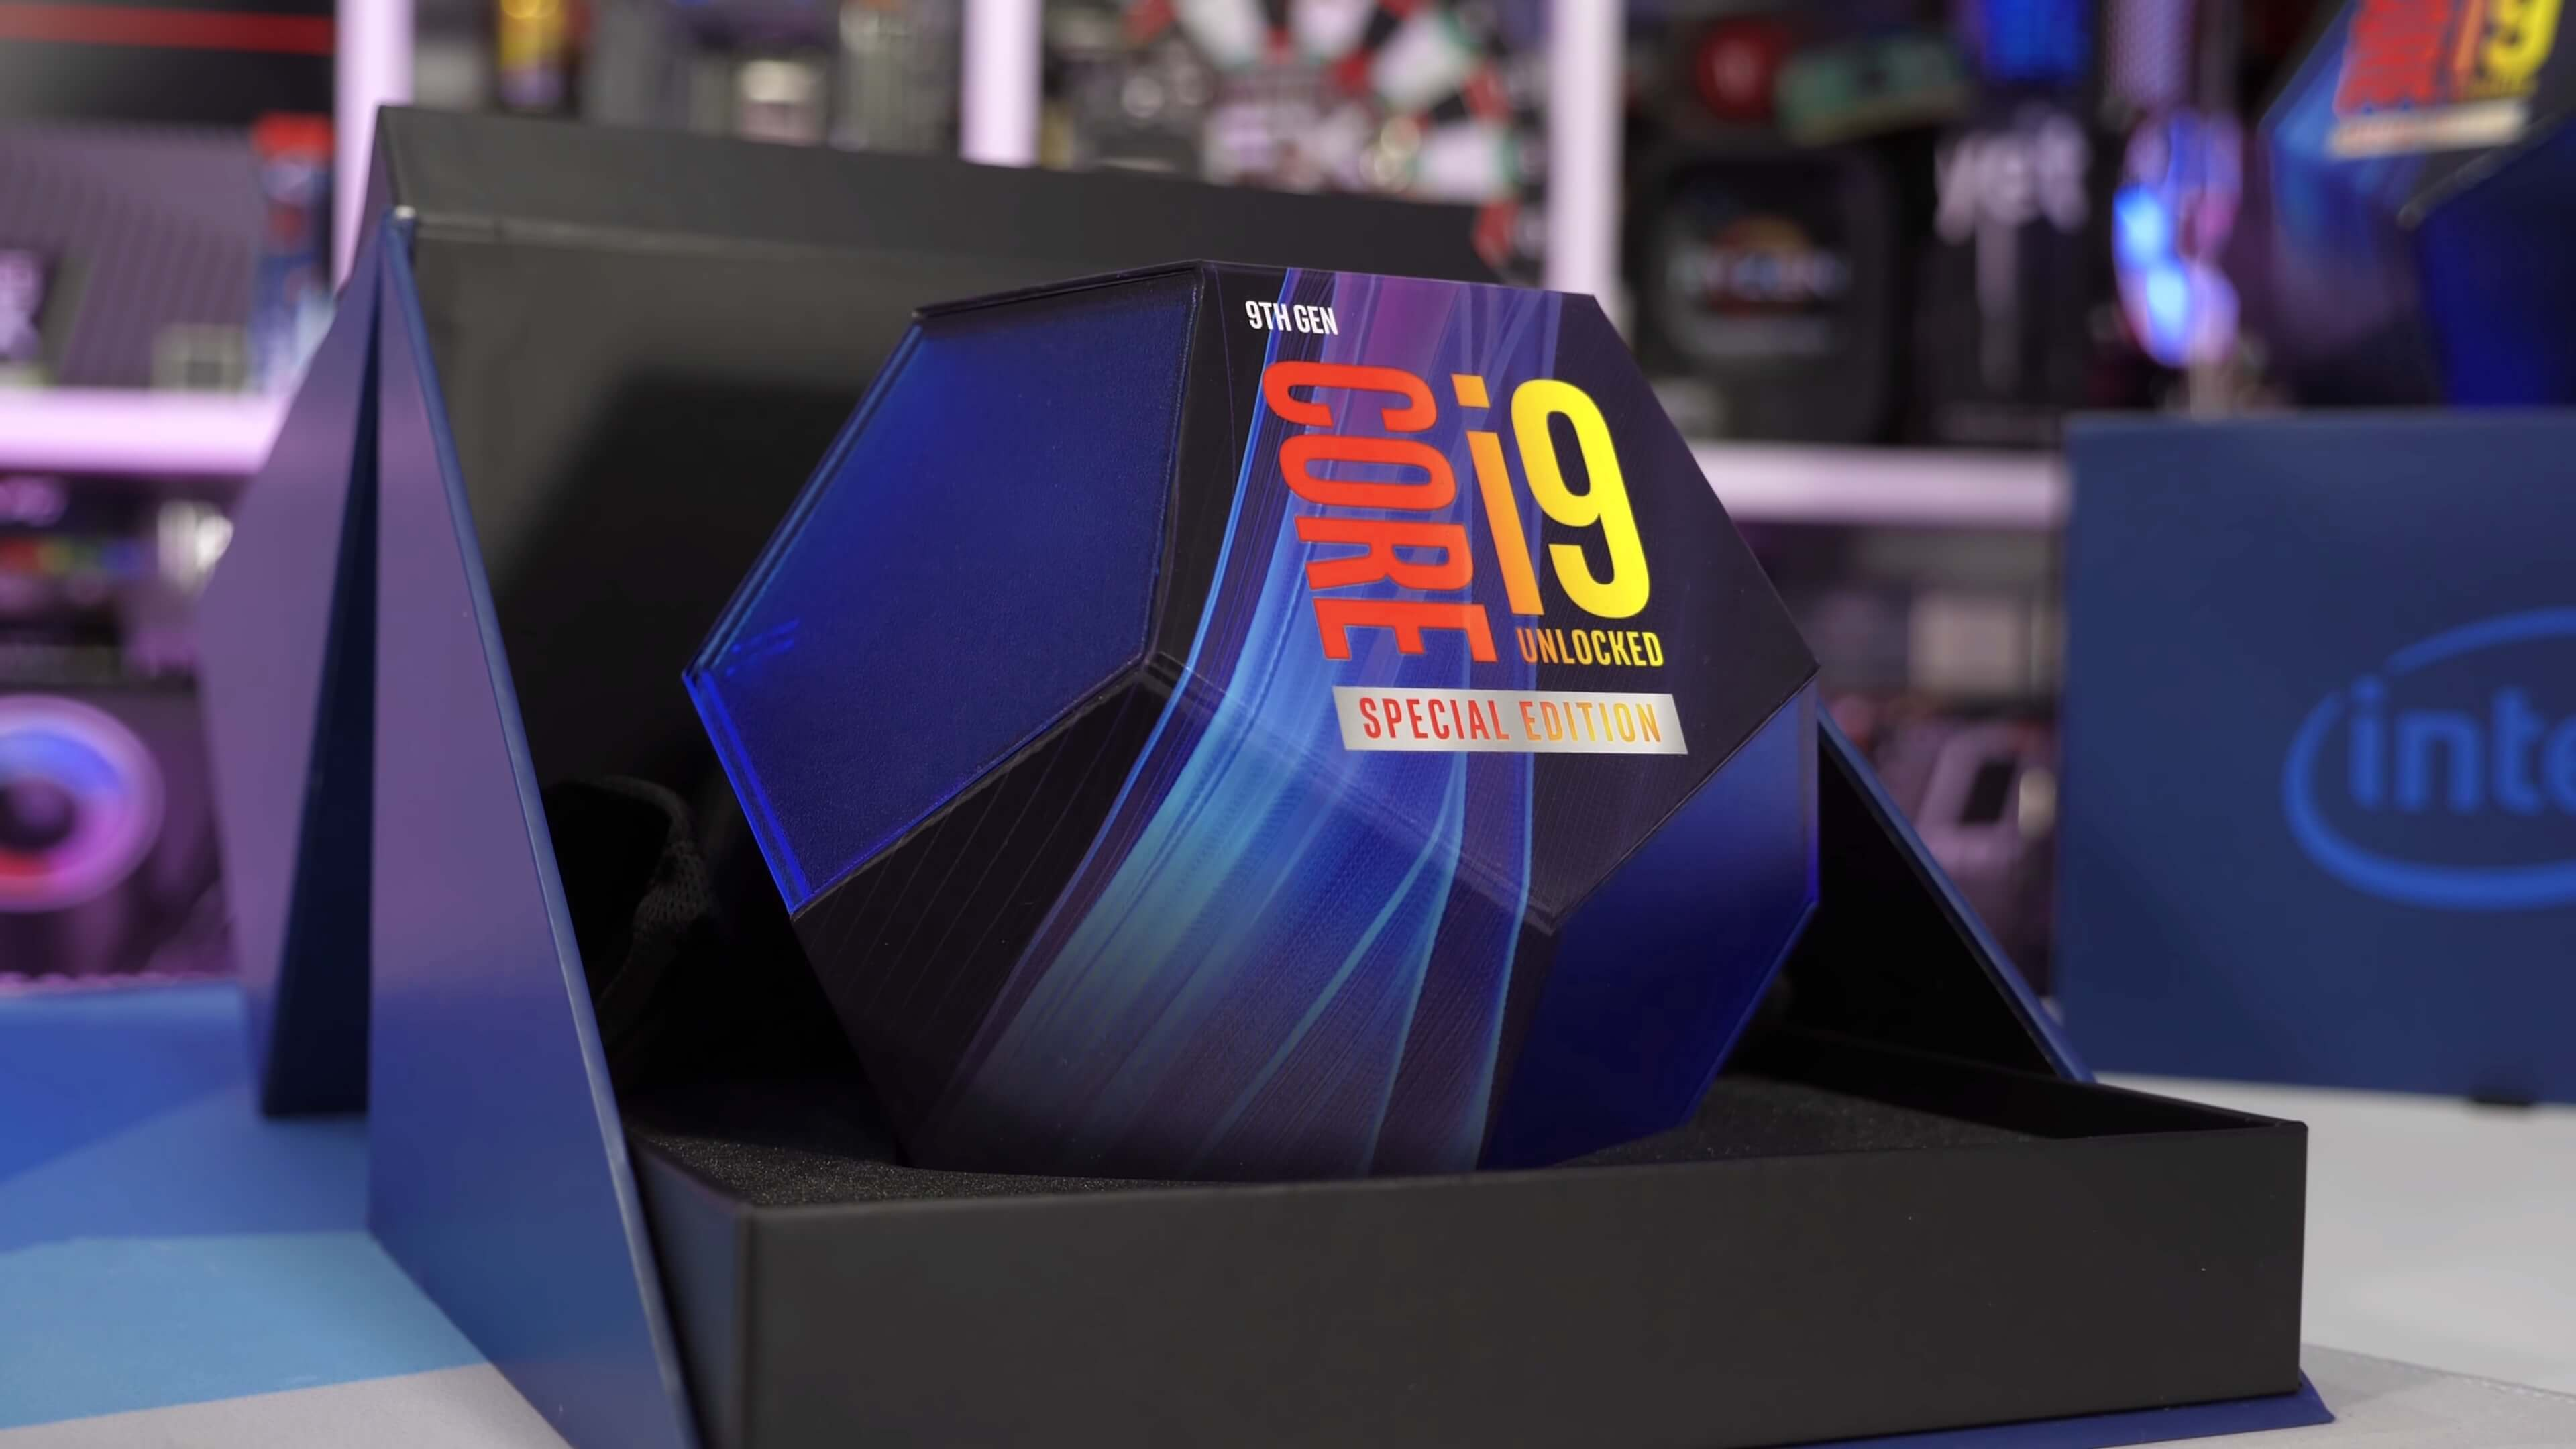 Intel Core i9-10900K spied in 3DMark database with 5.1GHz boost clock